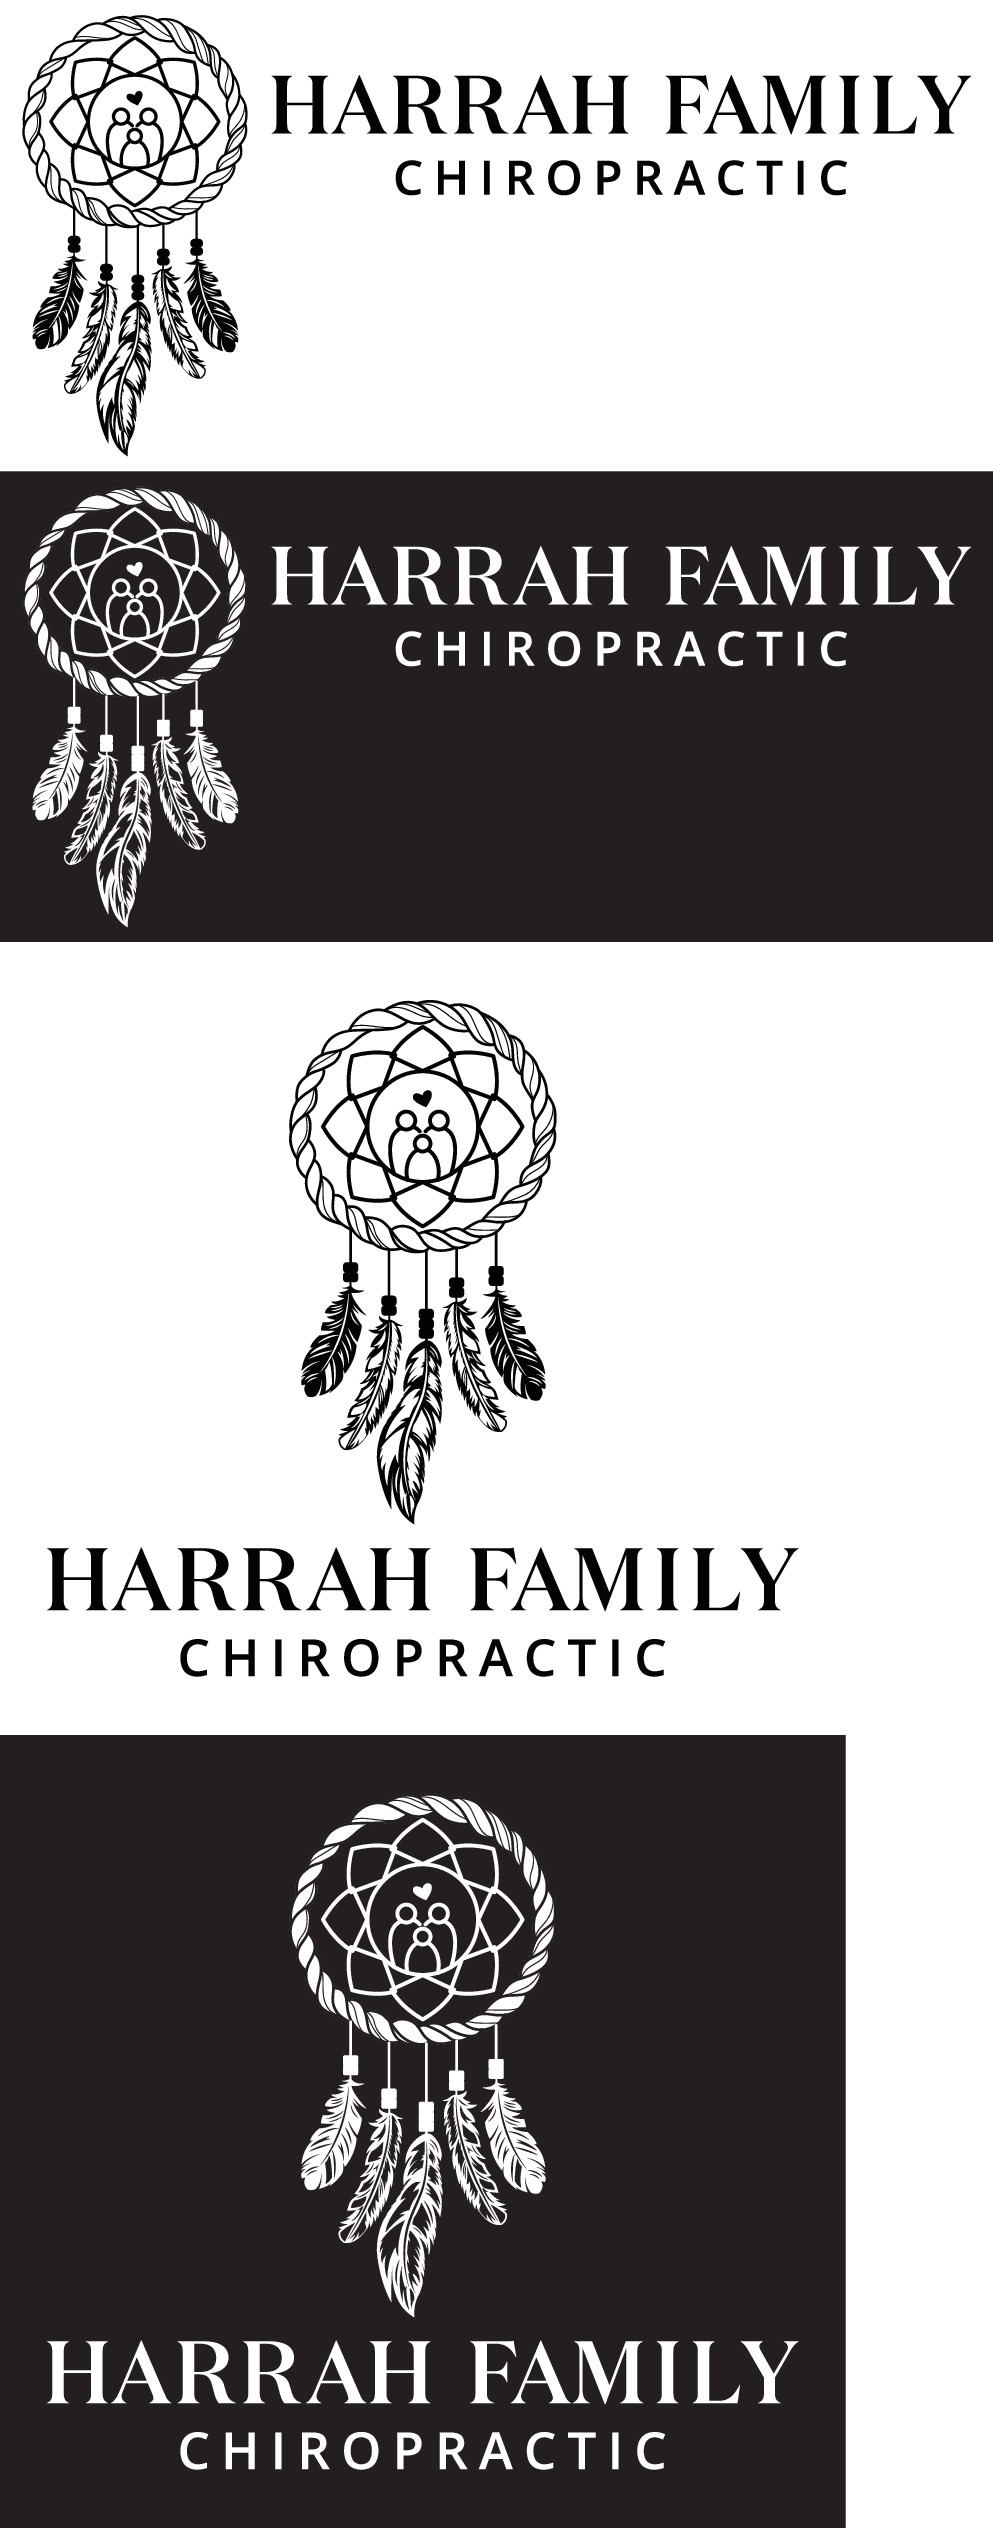 We need a logo that screams HEALTH but in a natural, holistic, hippy way